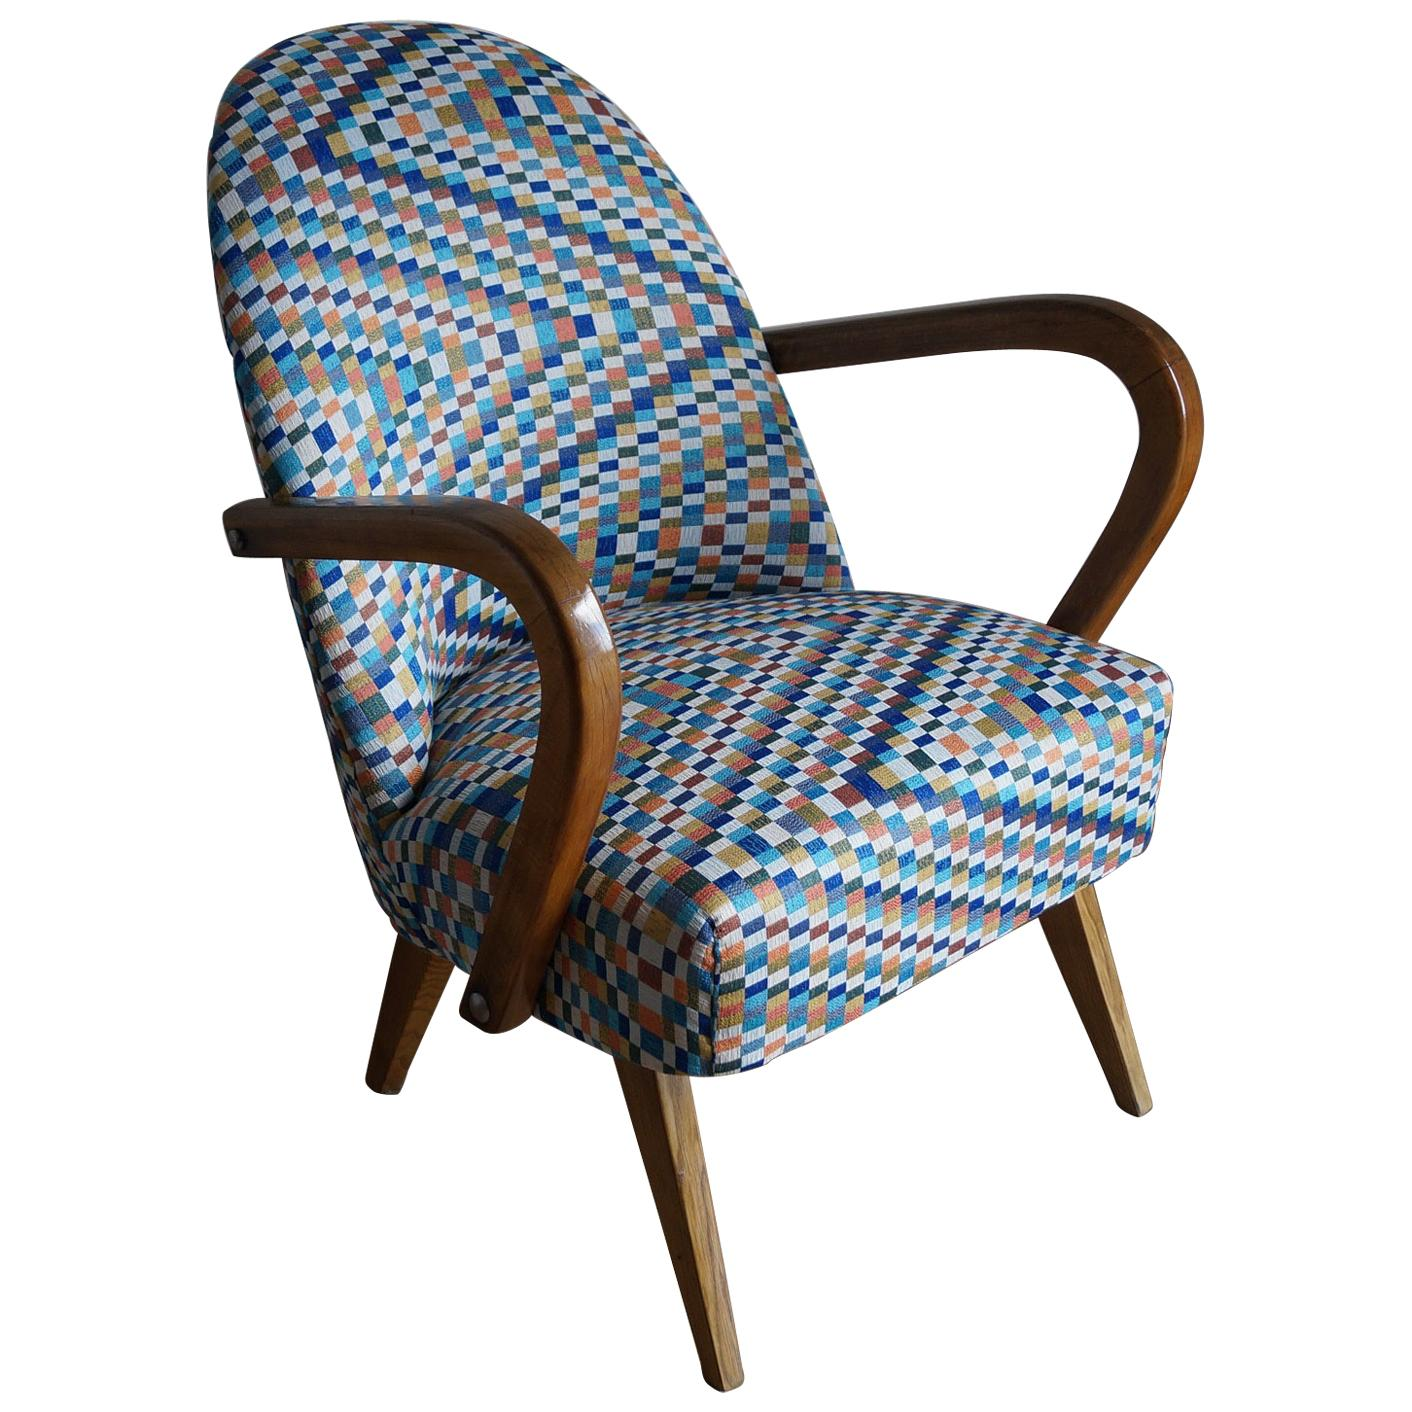 Design Armchair from 1960